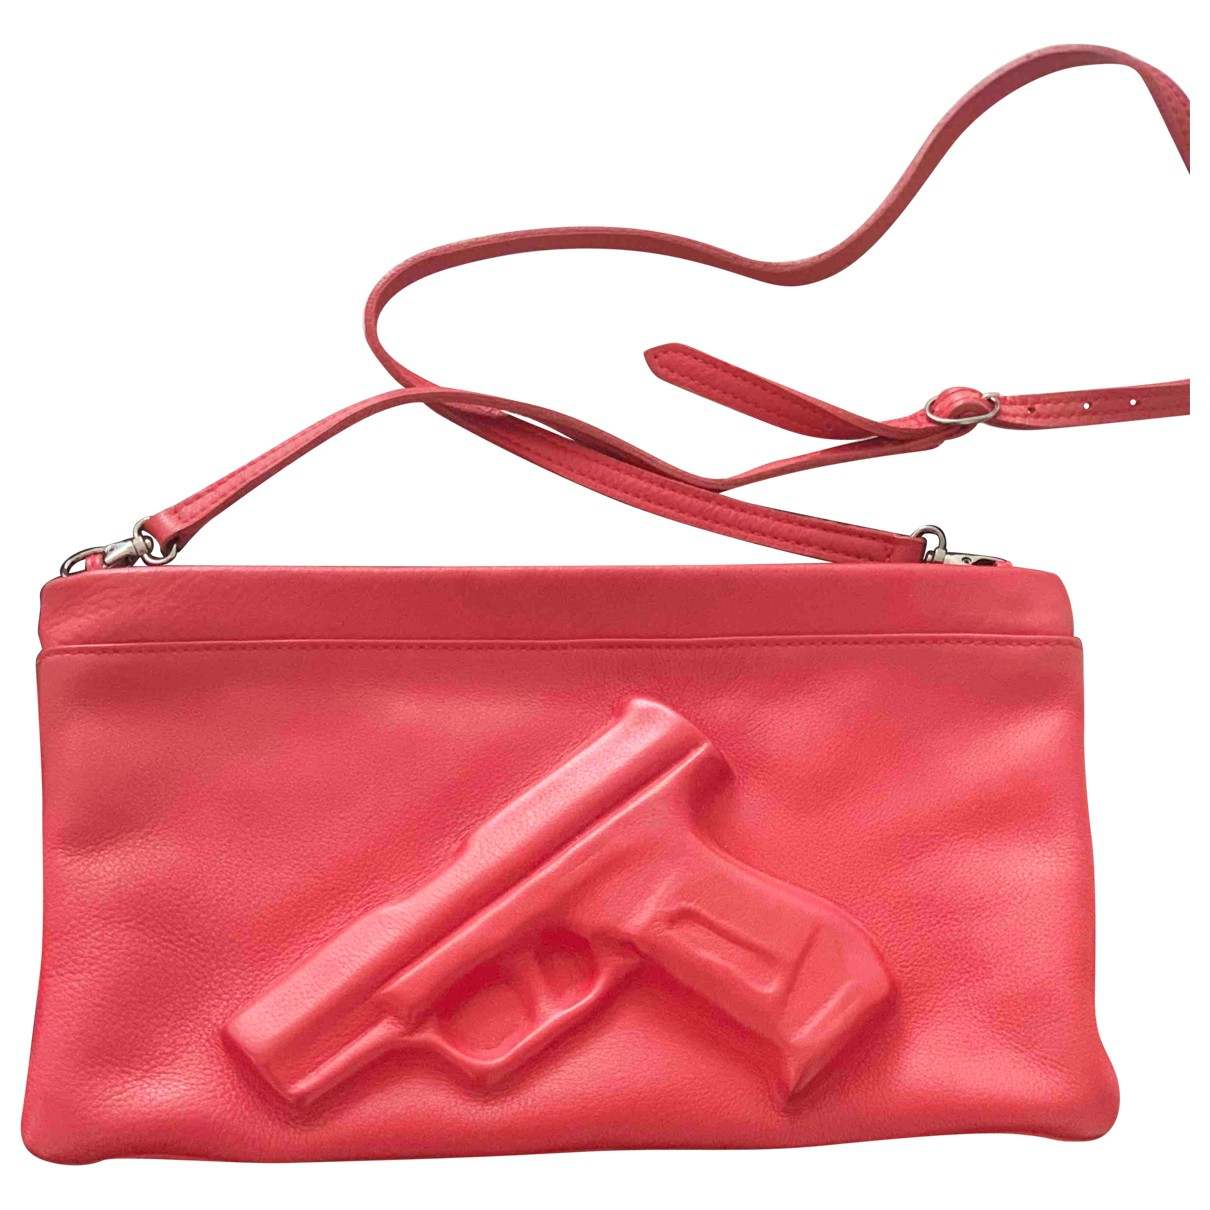 Vlieger & Vandam N Red Leather Clutch bag for Women N